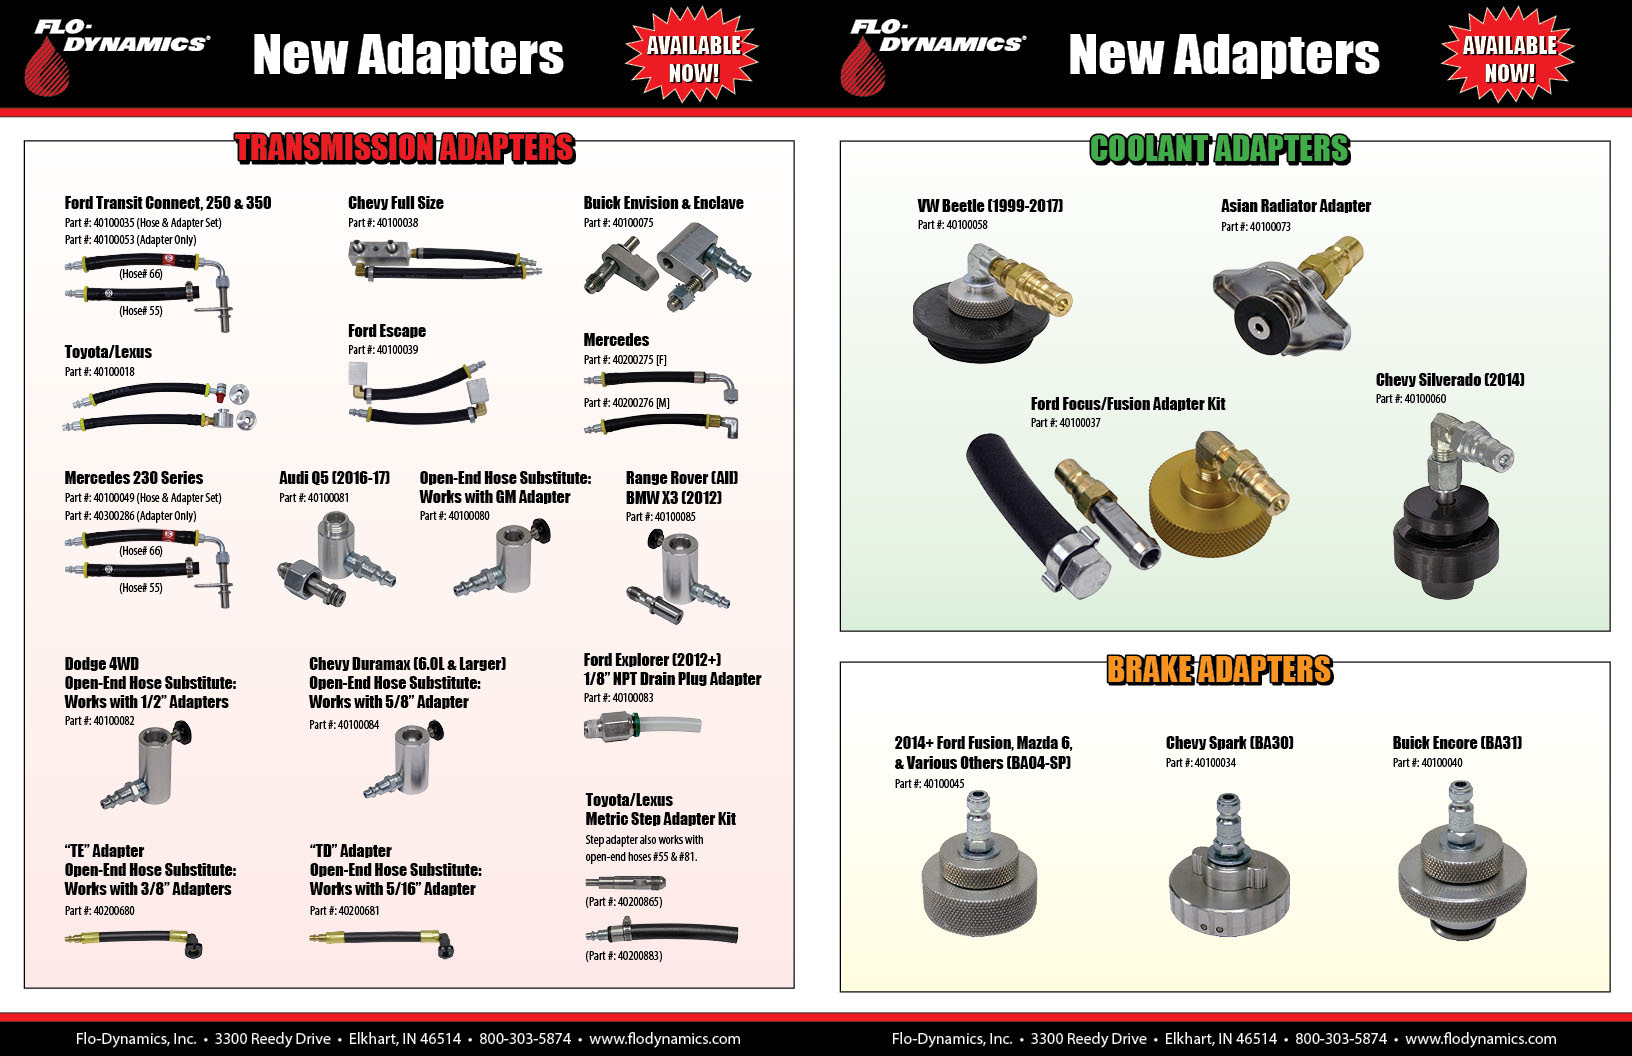 New Adapters